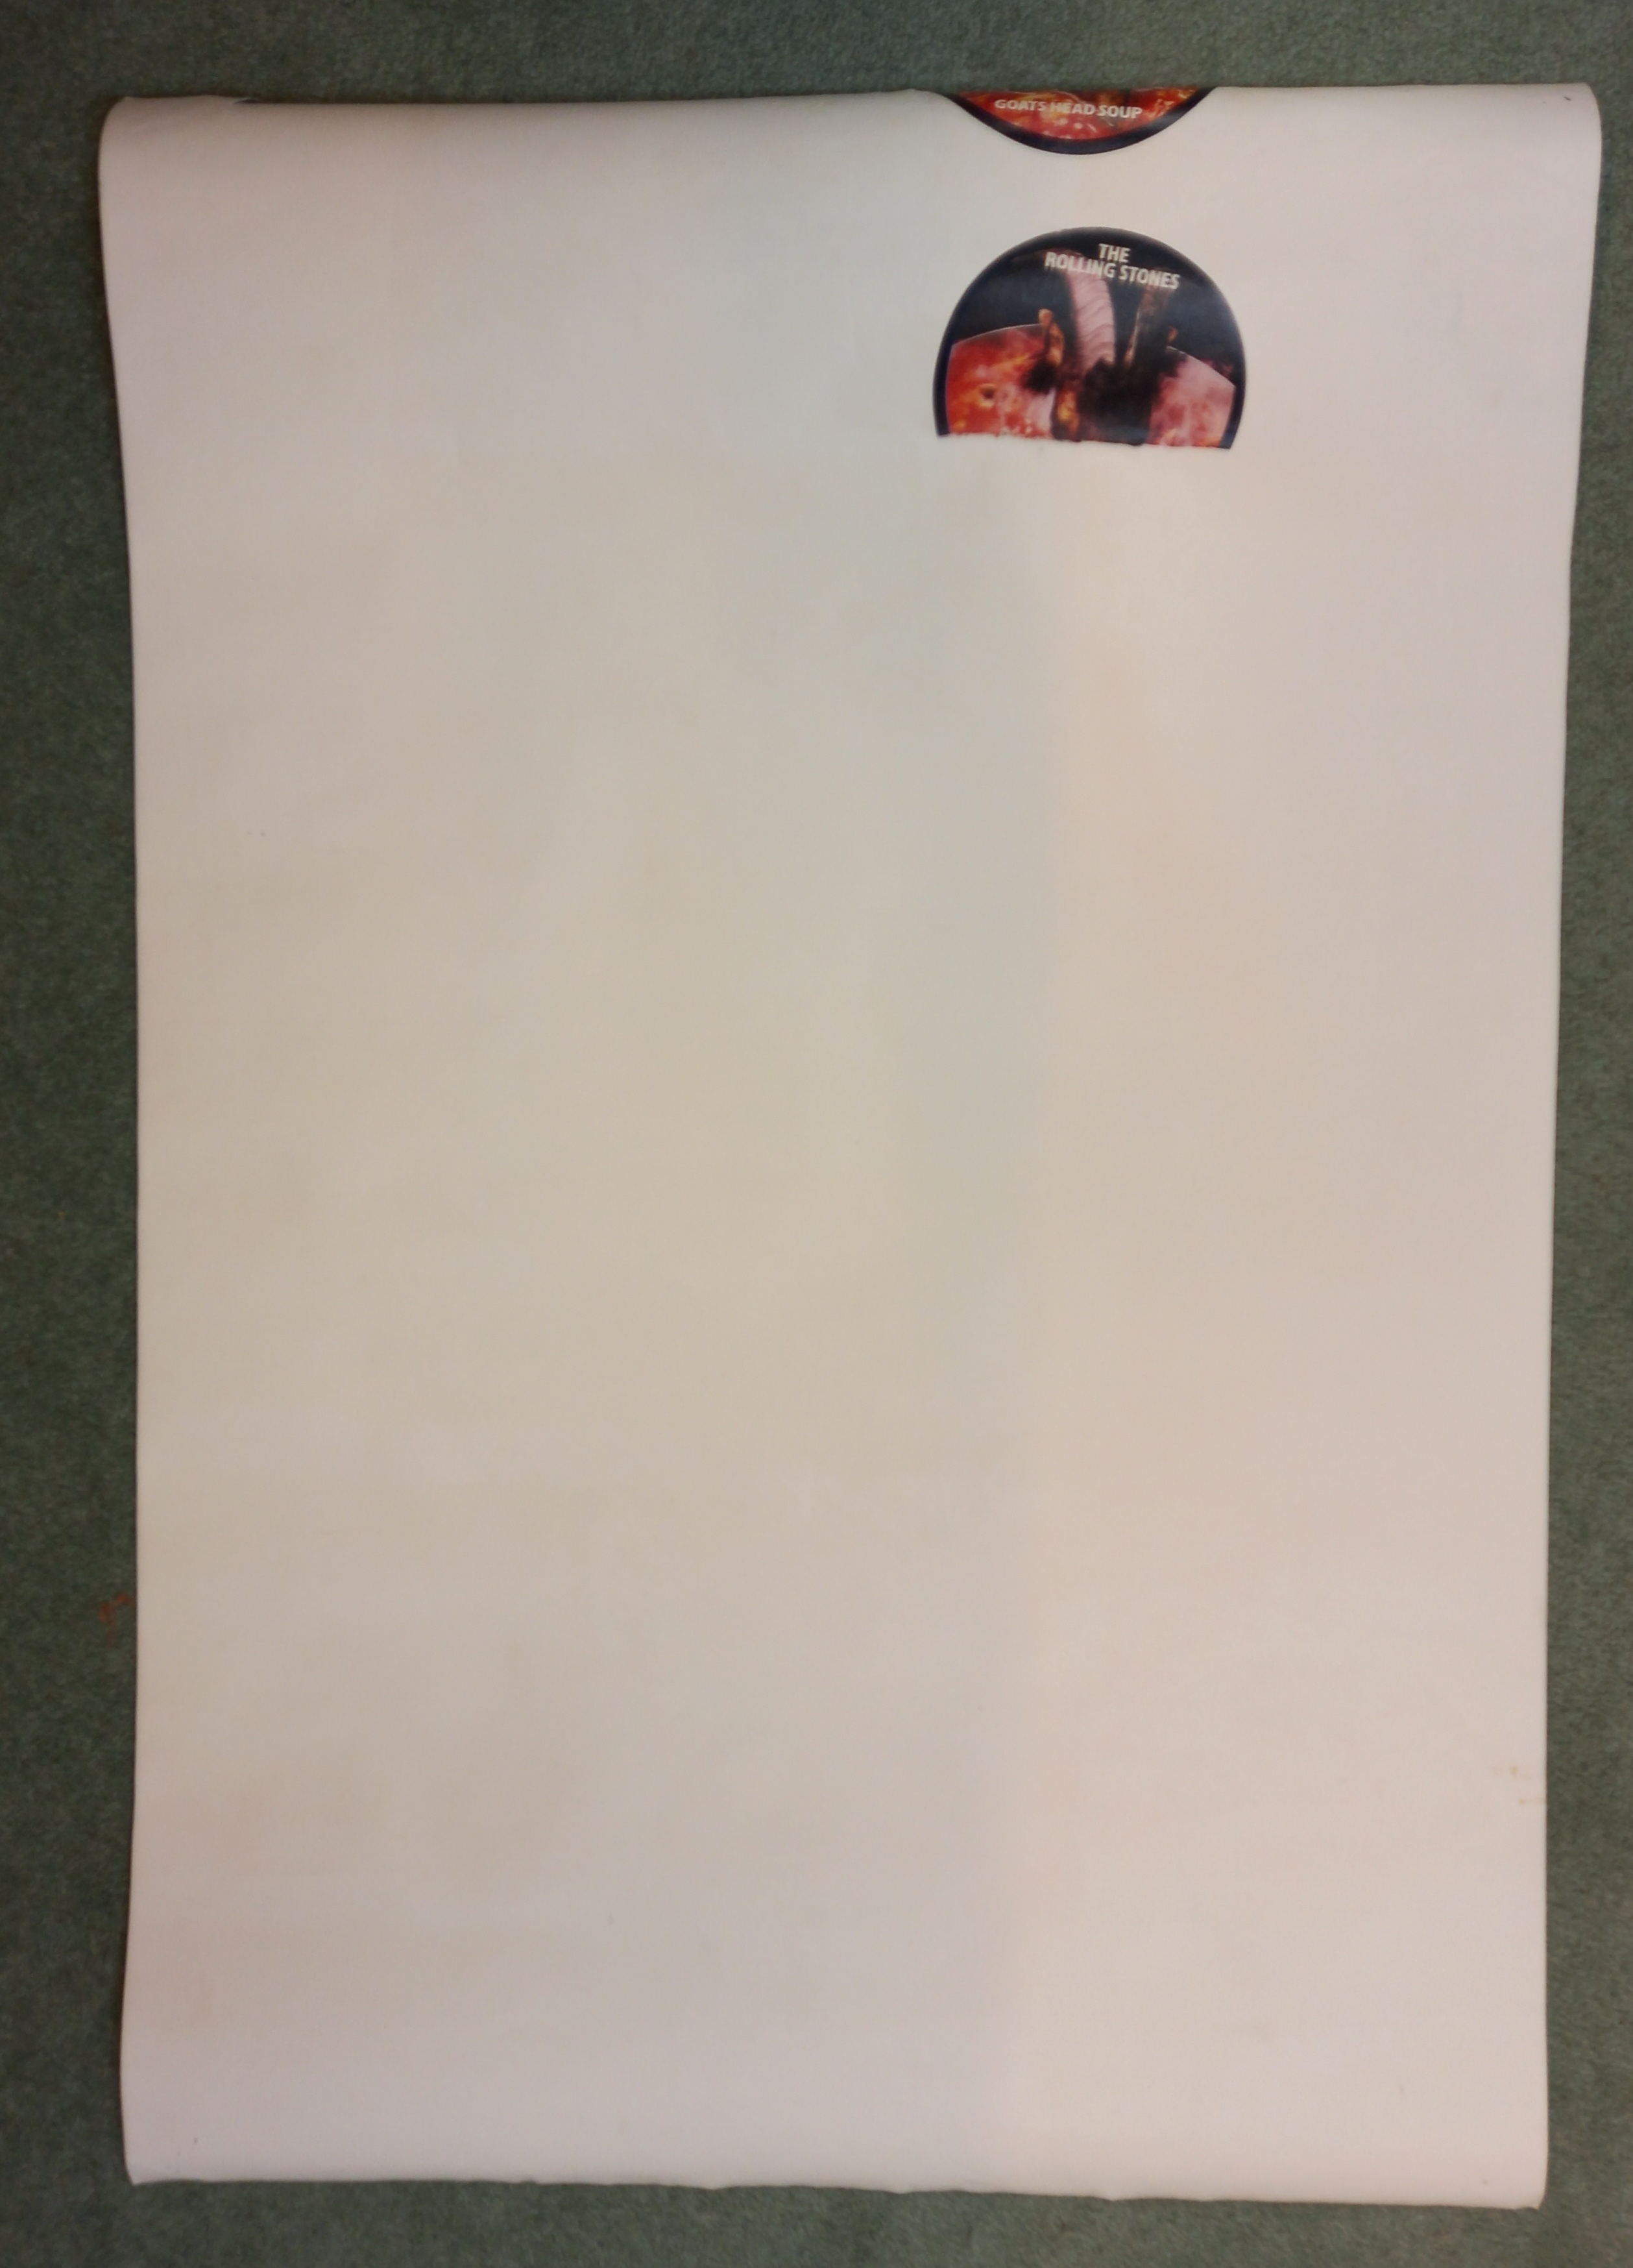 A ROLLING STONES 1971 tour poster designed by John Pasche, rolled as issued, previously secured by a - Image 2 of 3